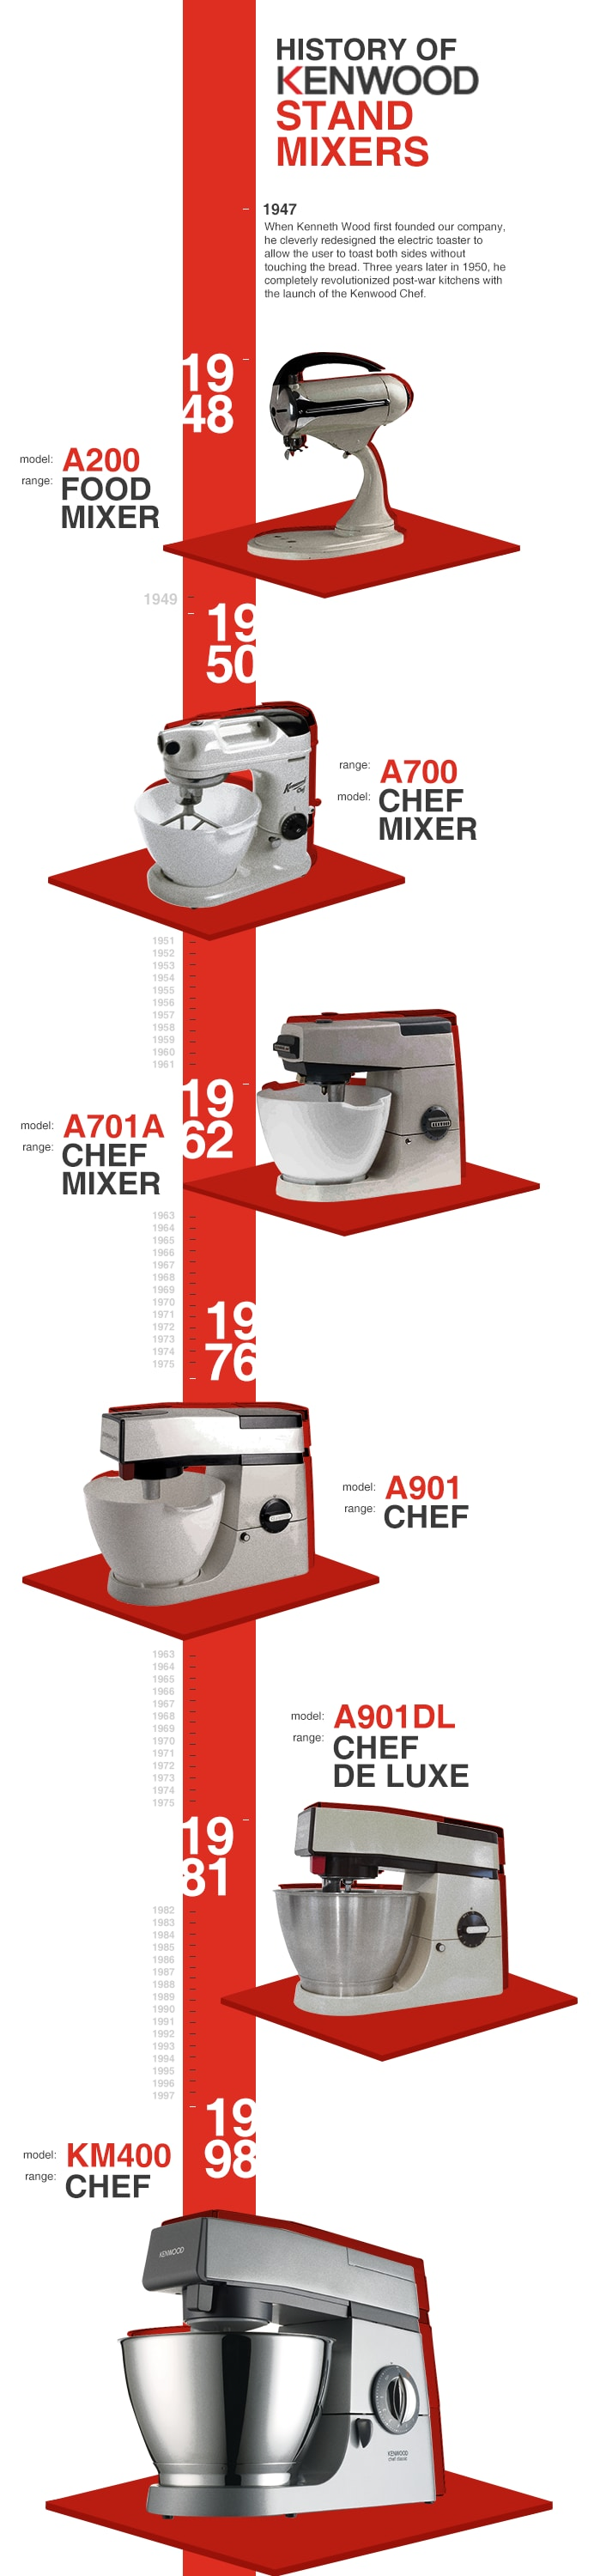 history of kenwood stand mixers infographic